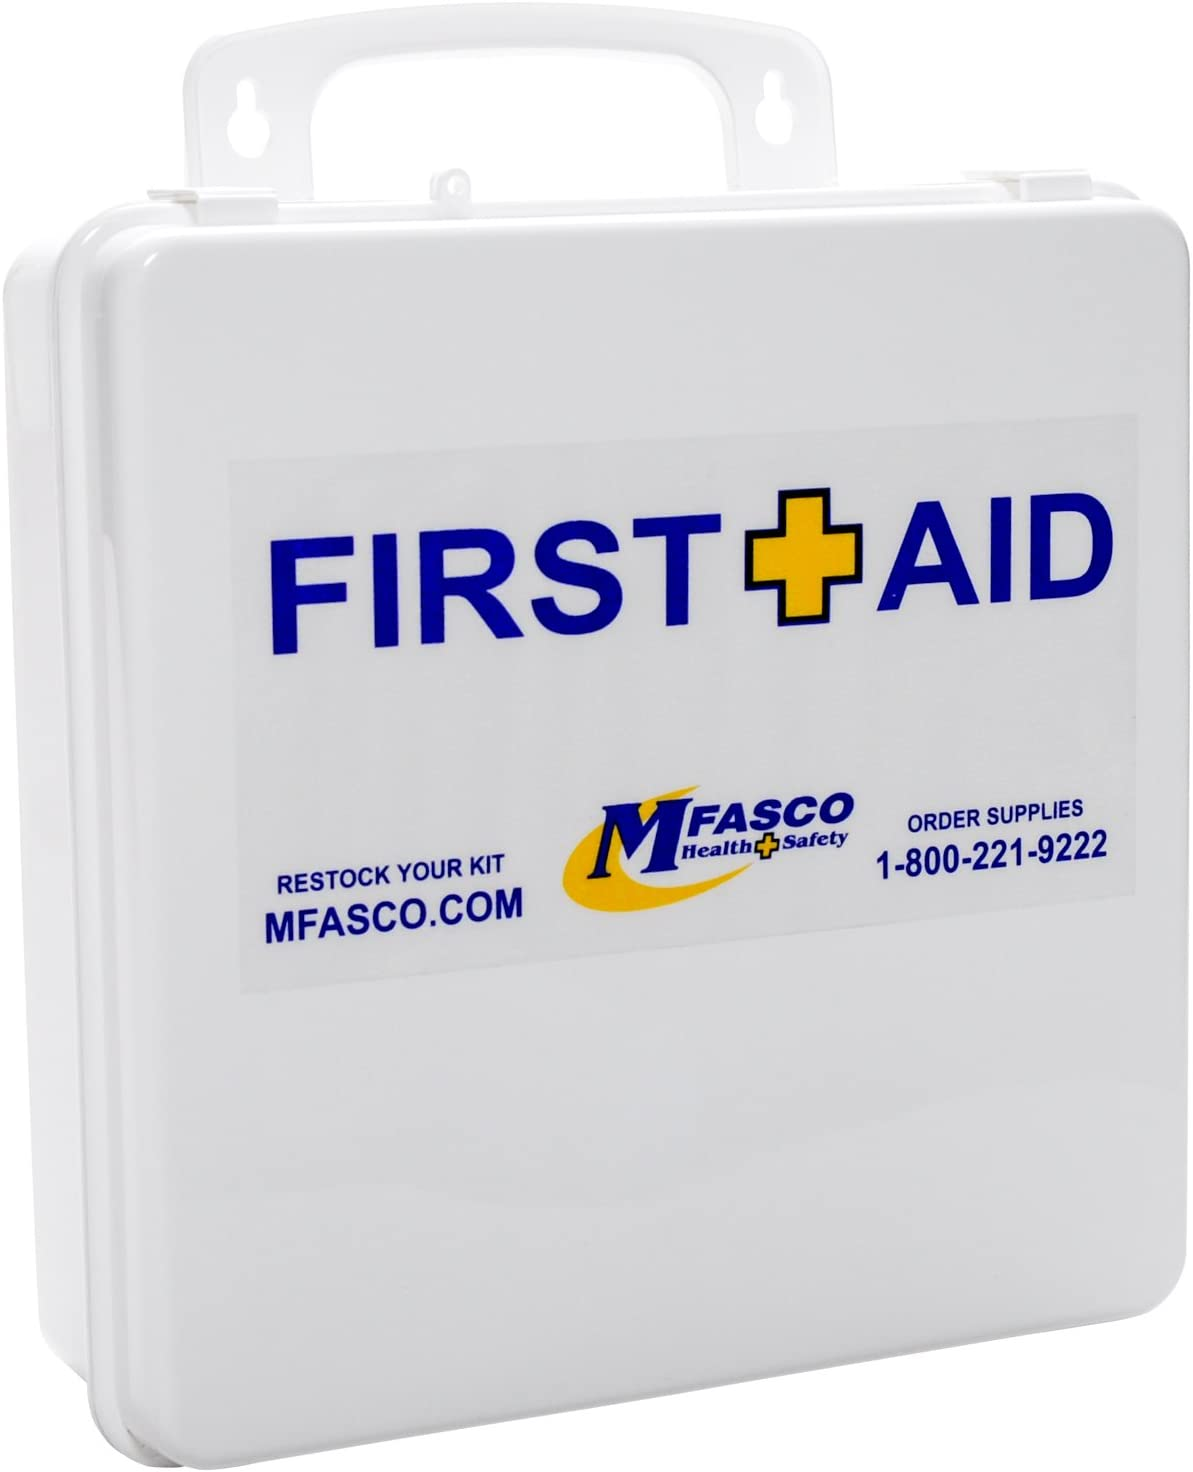 OSHA Class A Limited price sale Restaurant First Aid Plastic Kit with Bandages Blue trust